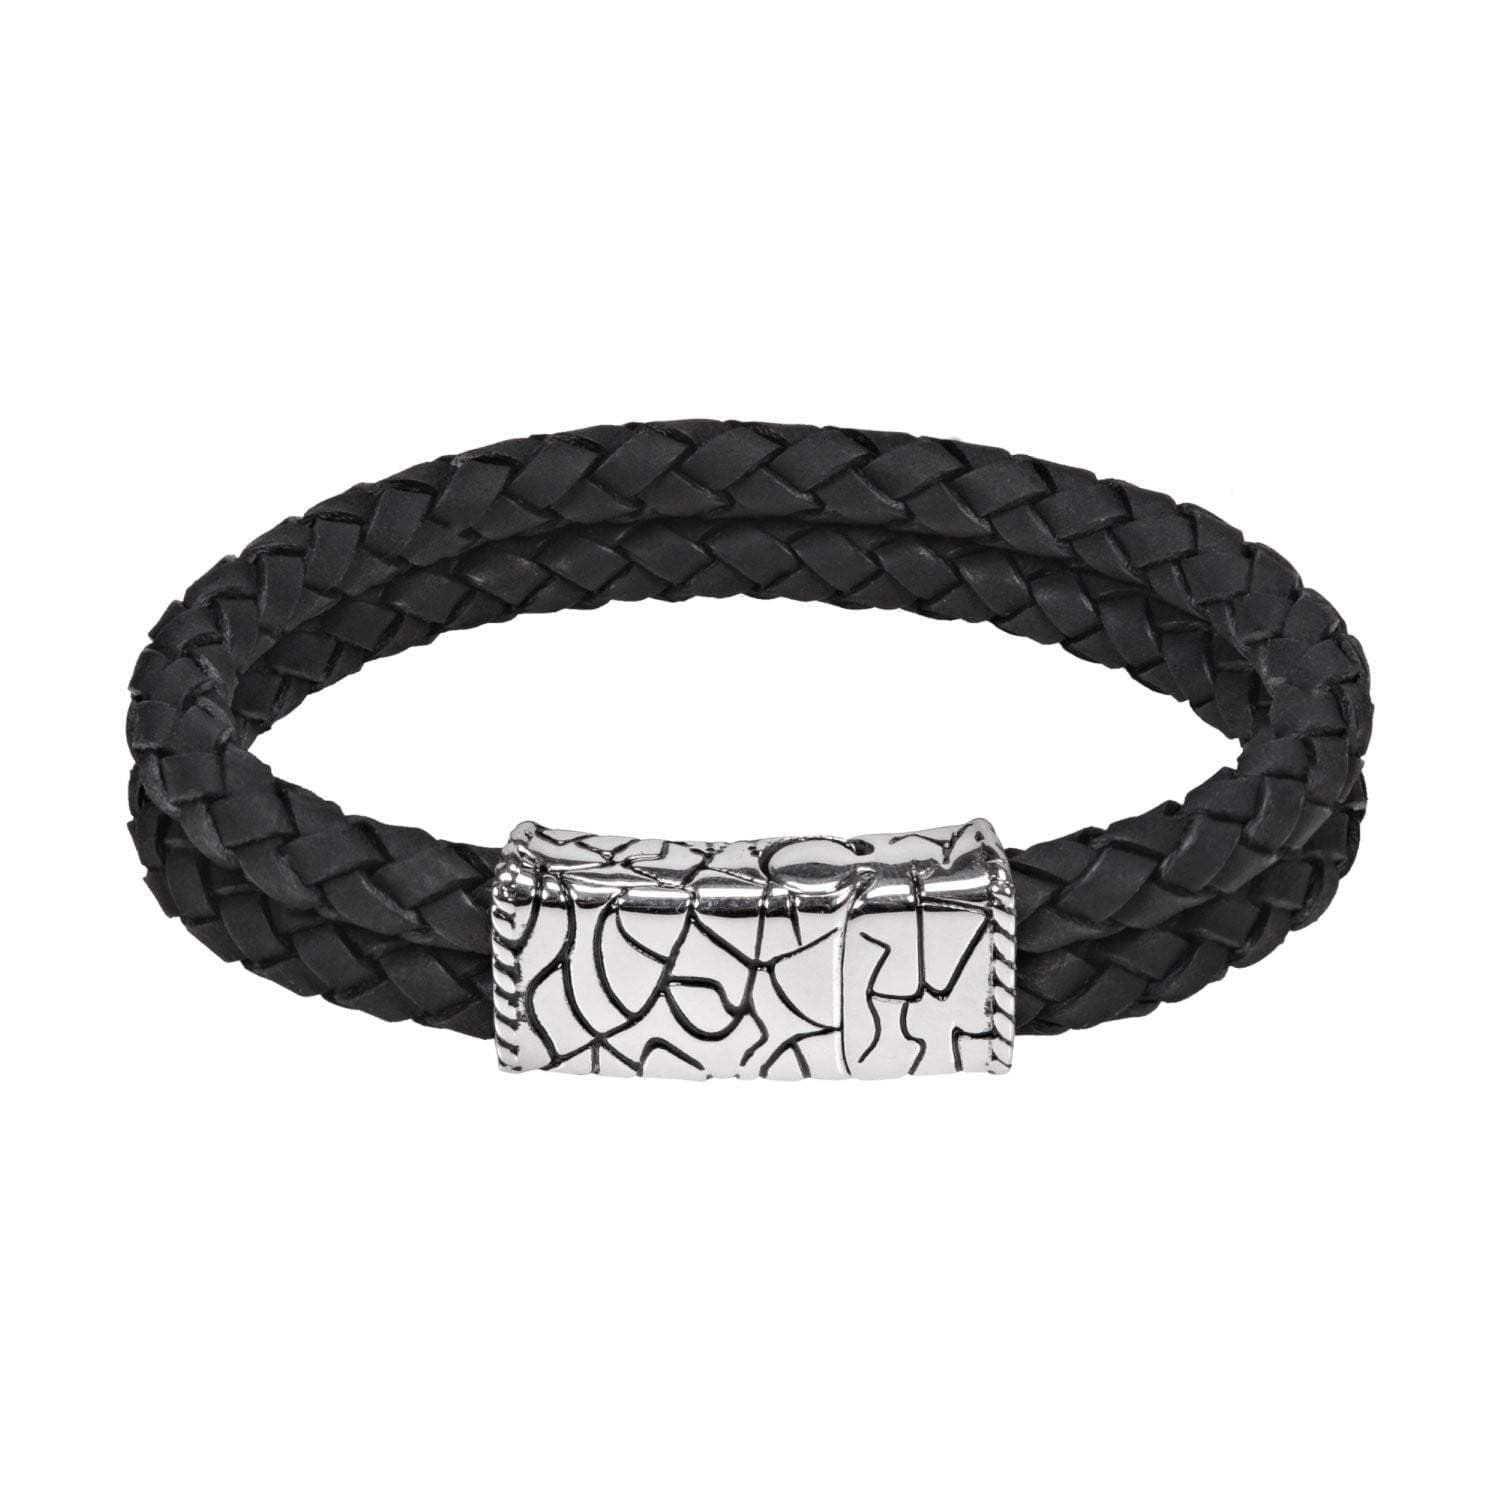 A.R.Z Steel - Two Tone Black Braided Carved Clasp Bracelet